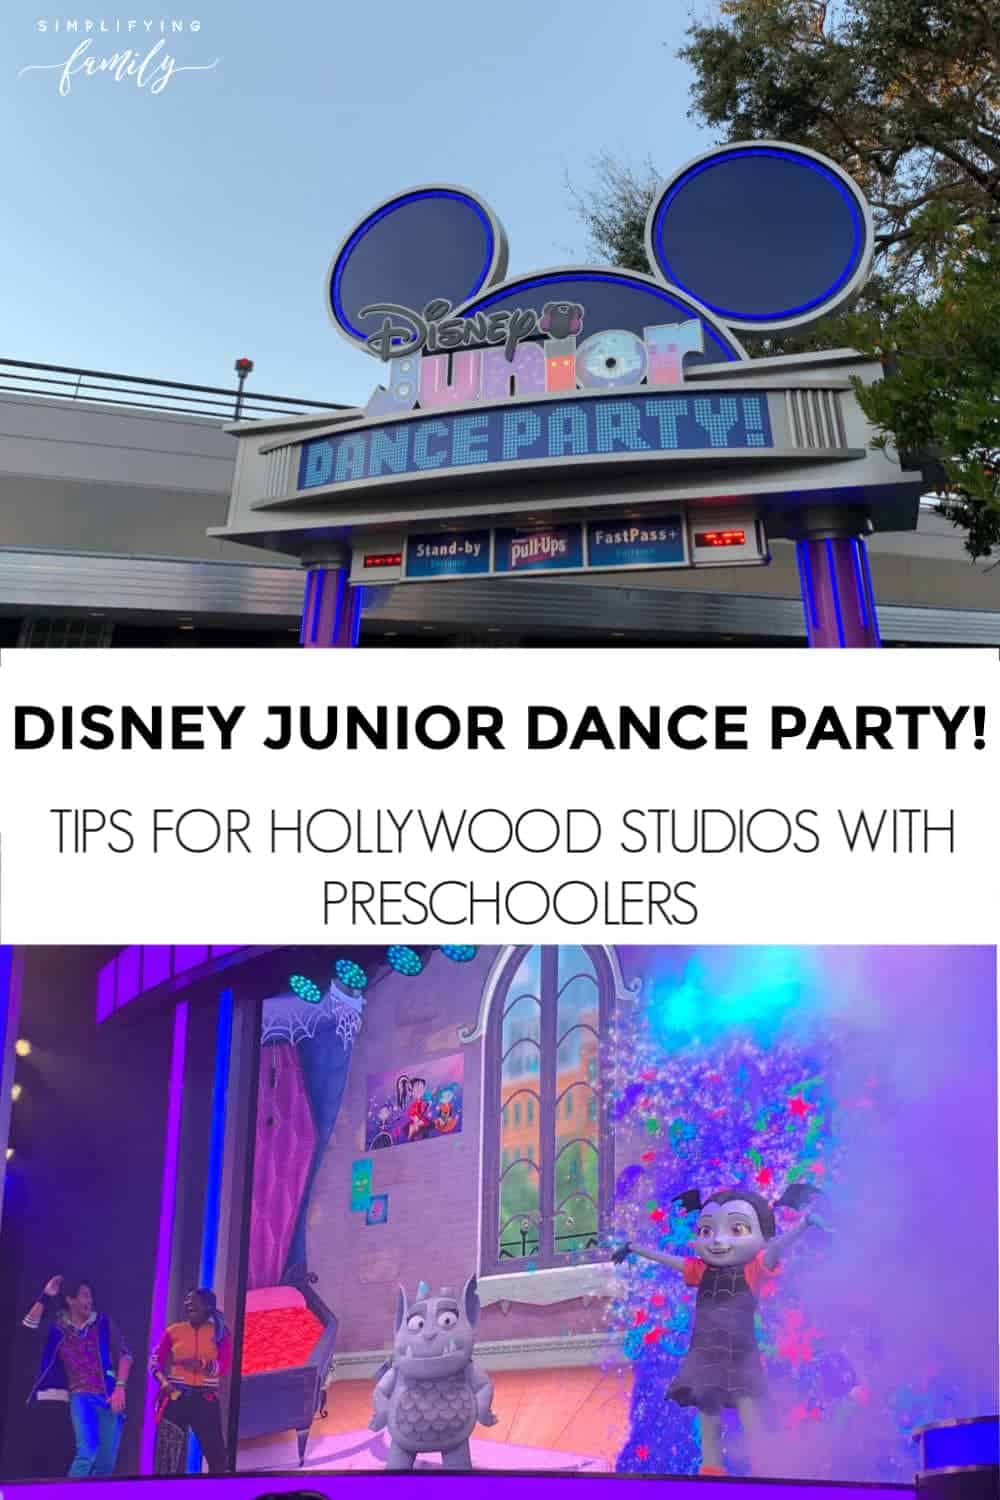 Considering visiting Walt Disney World Resort? Don't miss these tips for visiting Disney's Hollywood Studios with Preschoolers! Including our favorite place to see Disney Junior characters! #nowmorethanever #disneyjunior #waltdisneyworld #hollywoodstudios via @simplifyingfamily